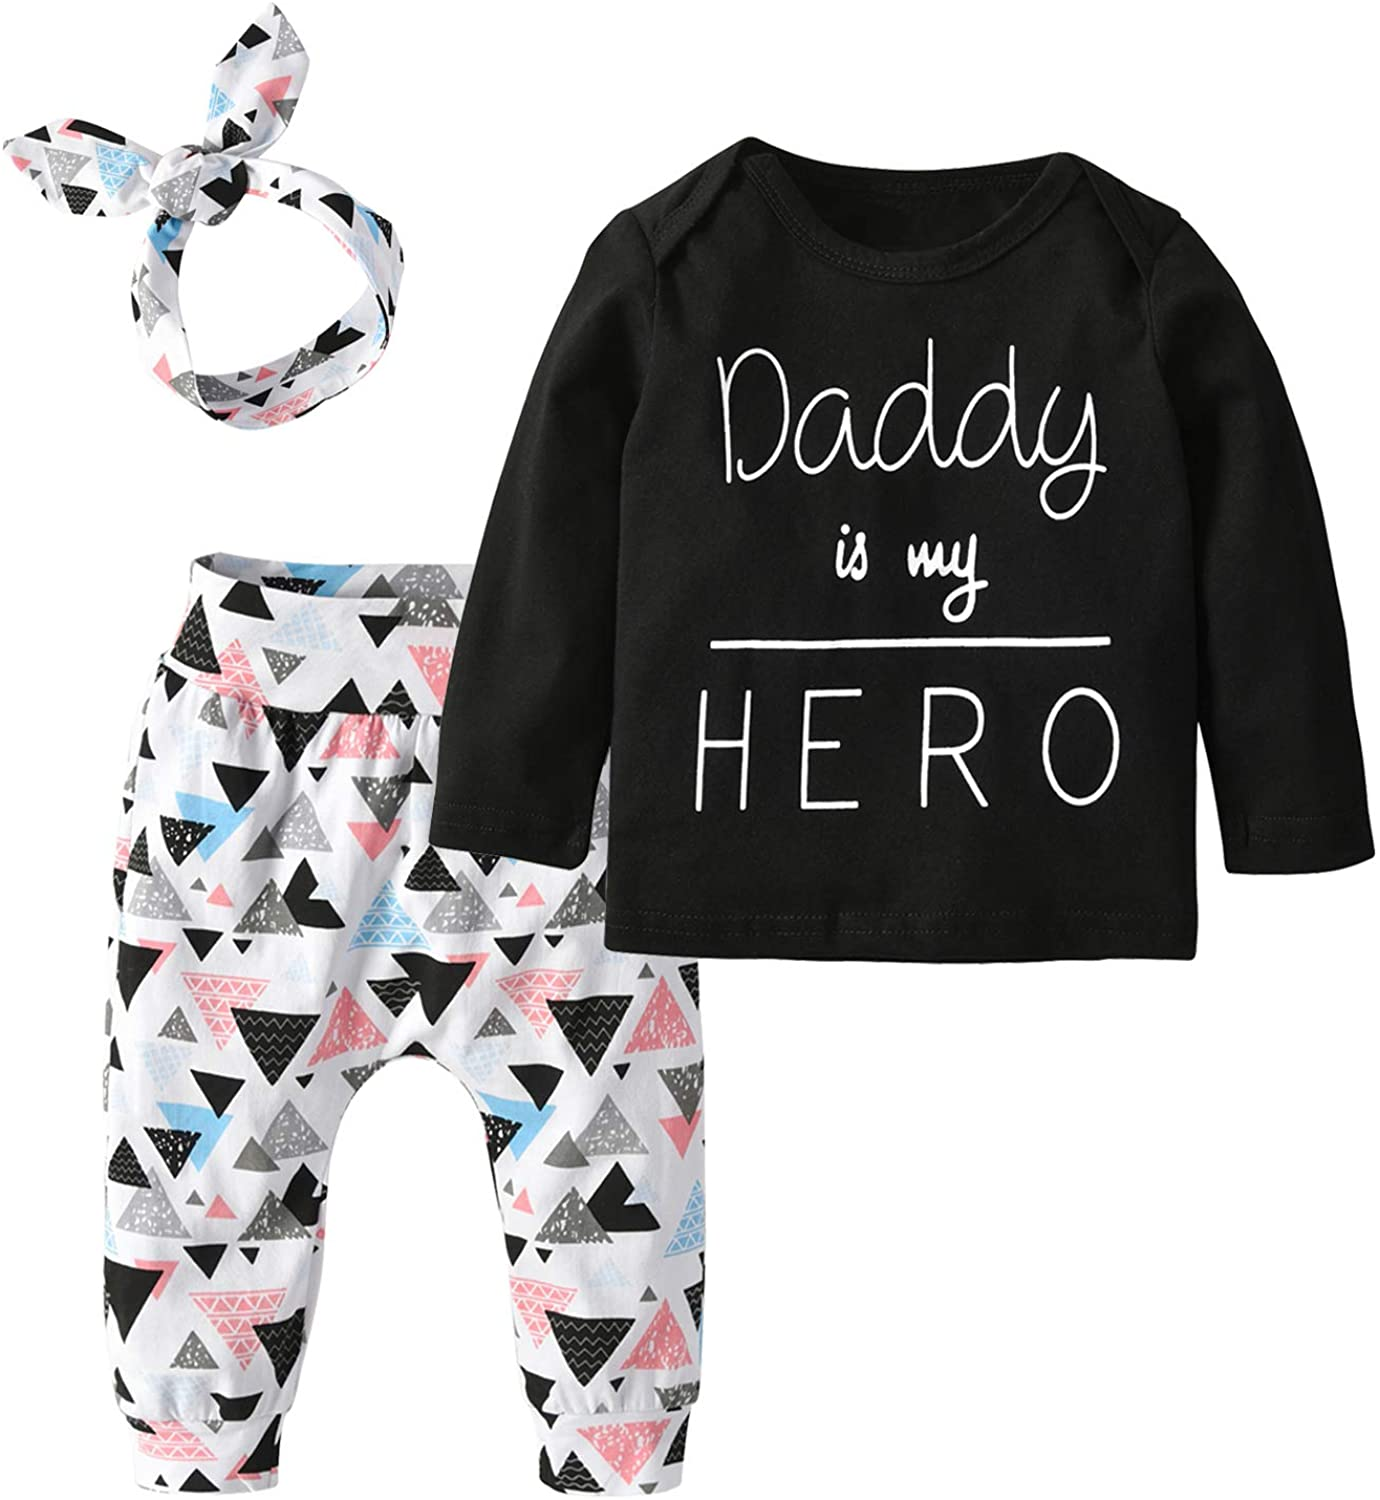 Baby Girls 3Pcs Outfit Set Letters T-Shirt Tops Pants with Headband